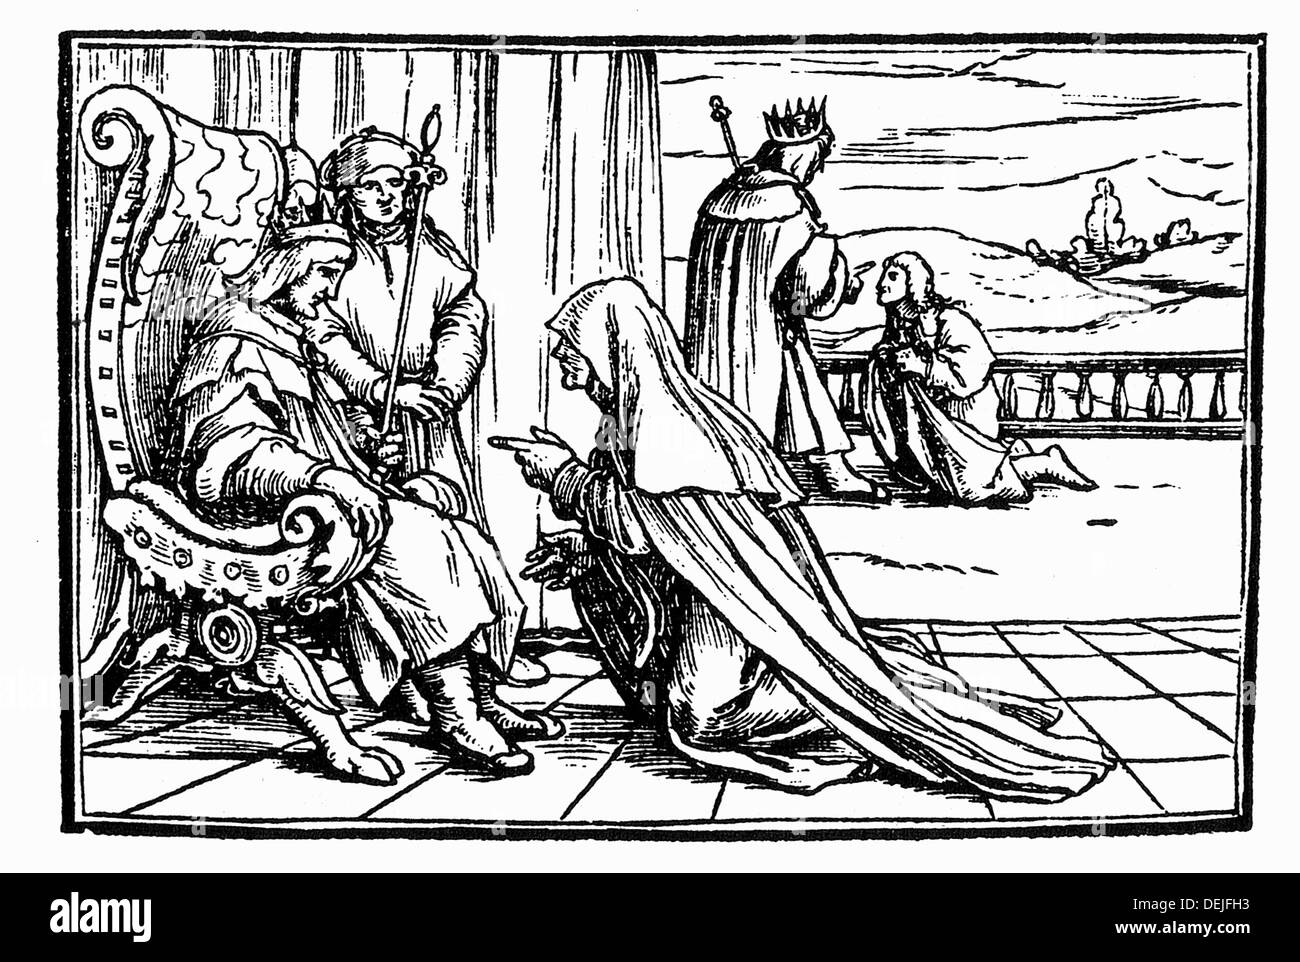 The woman from Tekoa tells her story to King David. Engraving by Holbein. Lyon, 1547 - Stock Image